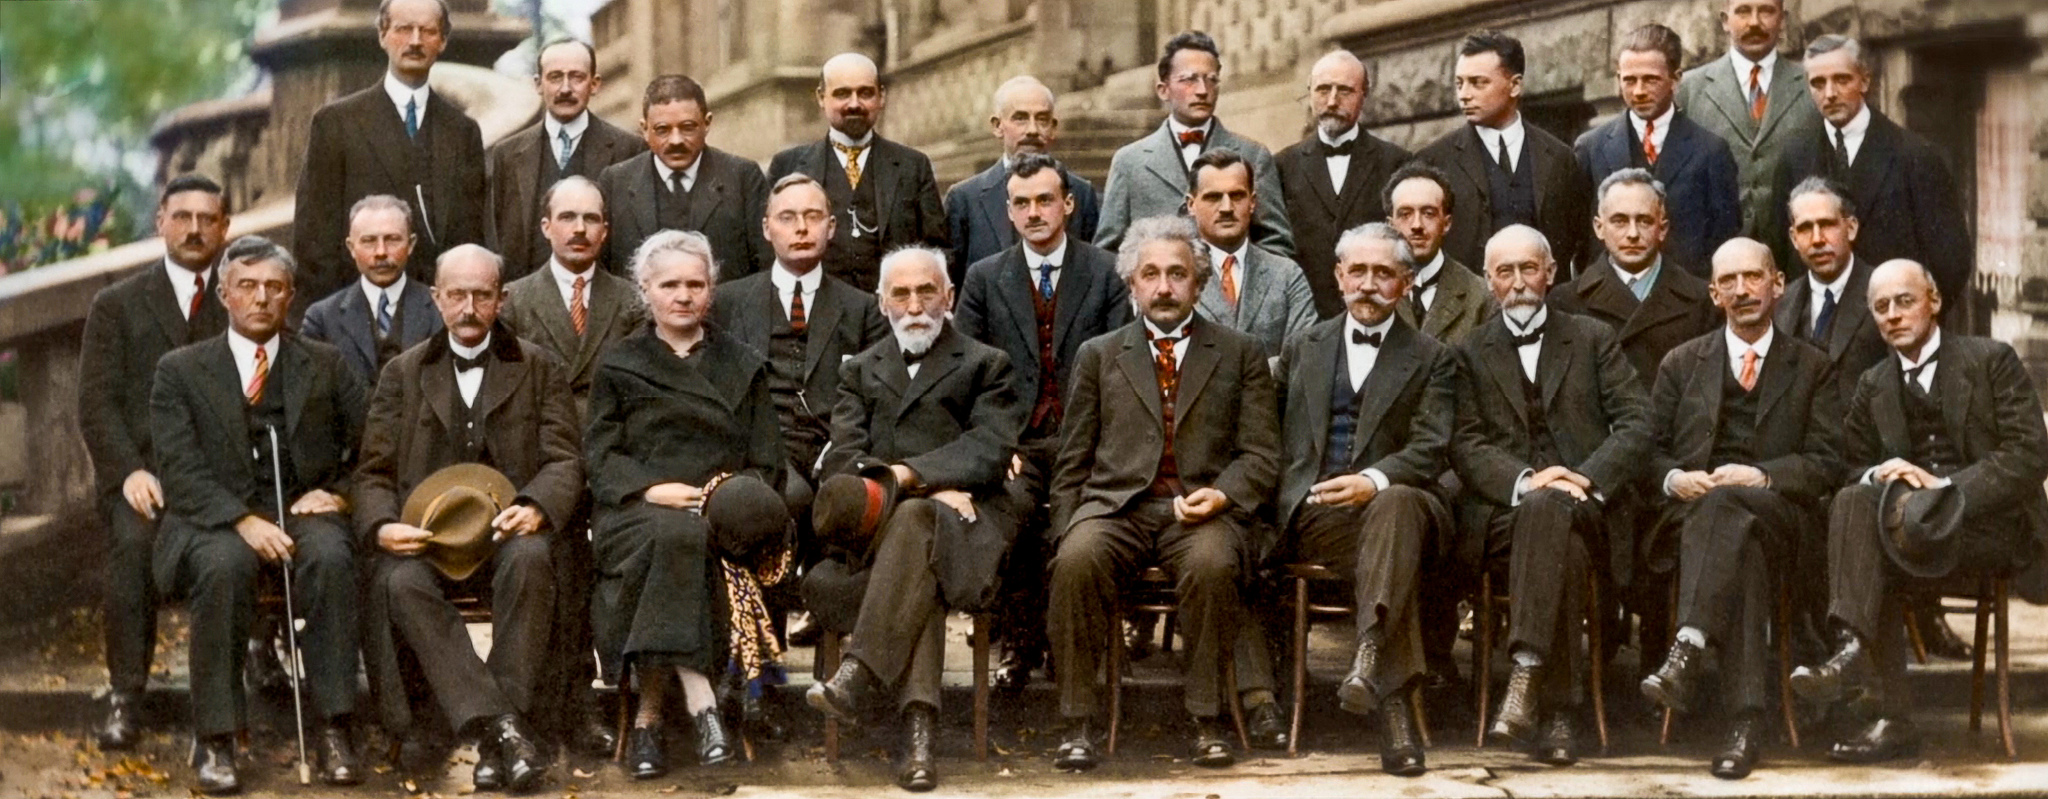 Fifth Solvay International Conference on Electrons and Photons.   October, 1927.